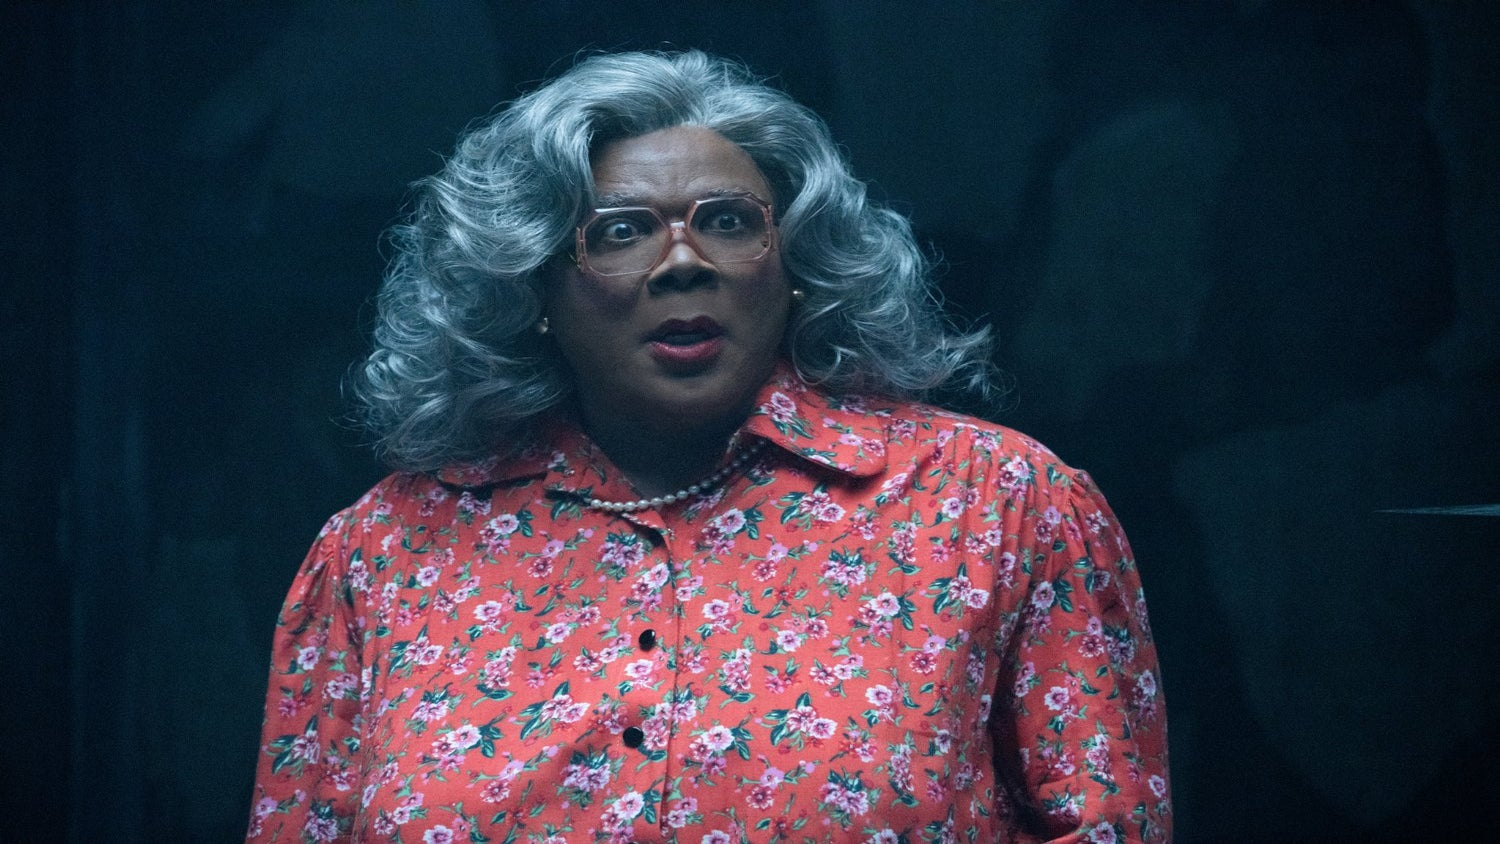 Tyler Perry Announces 'Madea's Farewell' Stage Play Tour